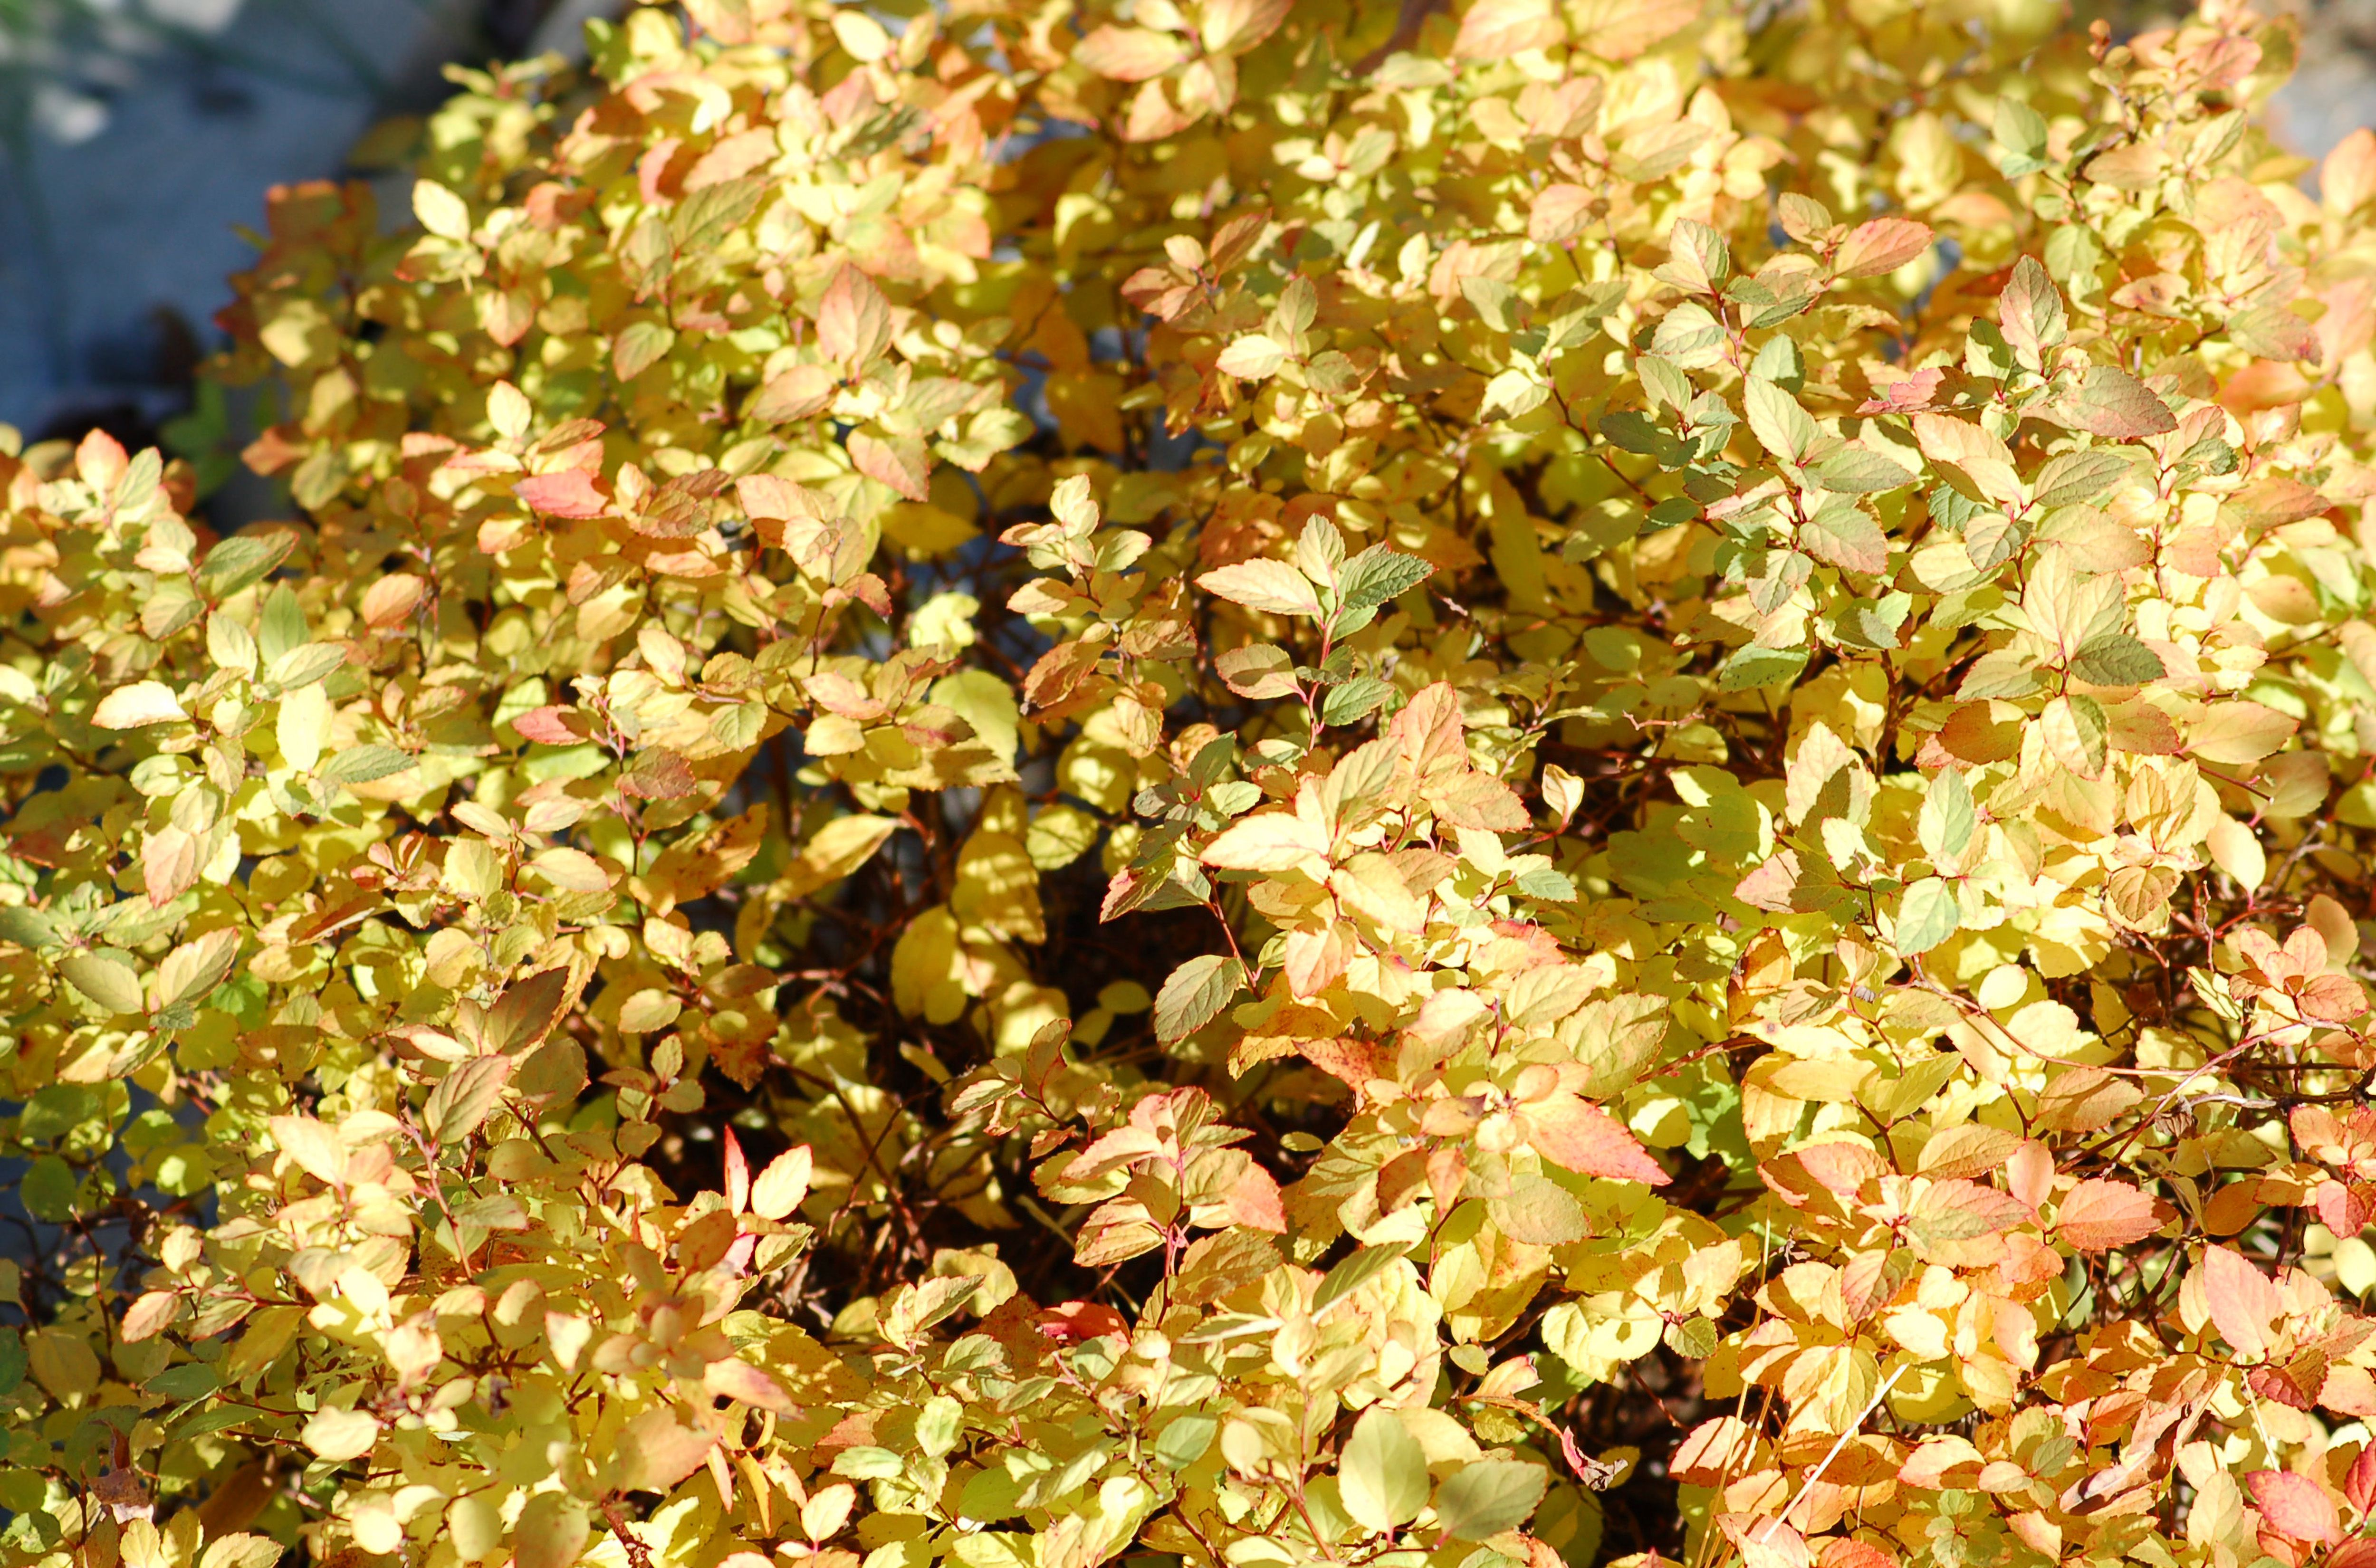 Gold Mound spirea's foliage picking up a tinge of red in autumn.